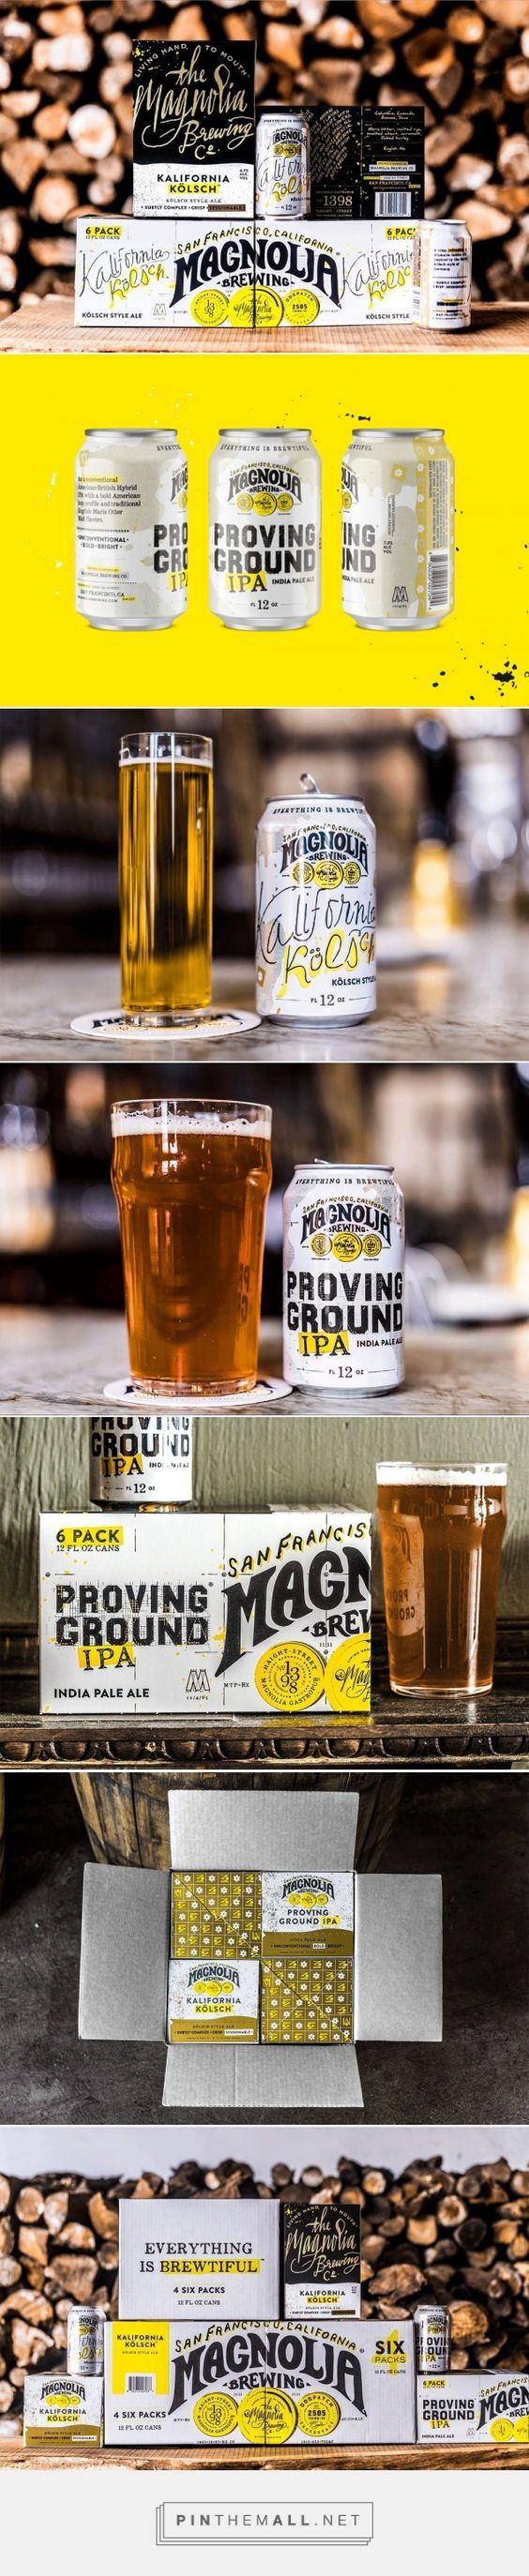 Magnolia Brewing Co. Branding and Packaging by Gamut | Fivestar Branding Agency – Design and Branding Agency & Curated Inspiration Gallery